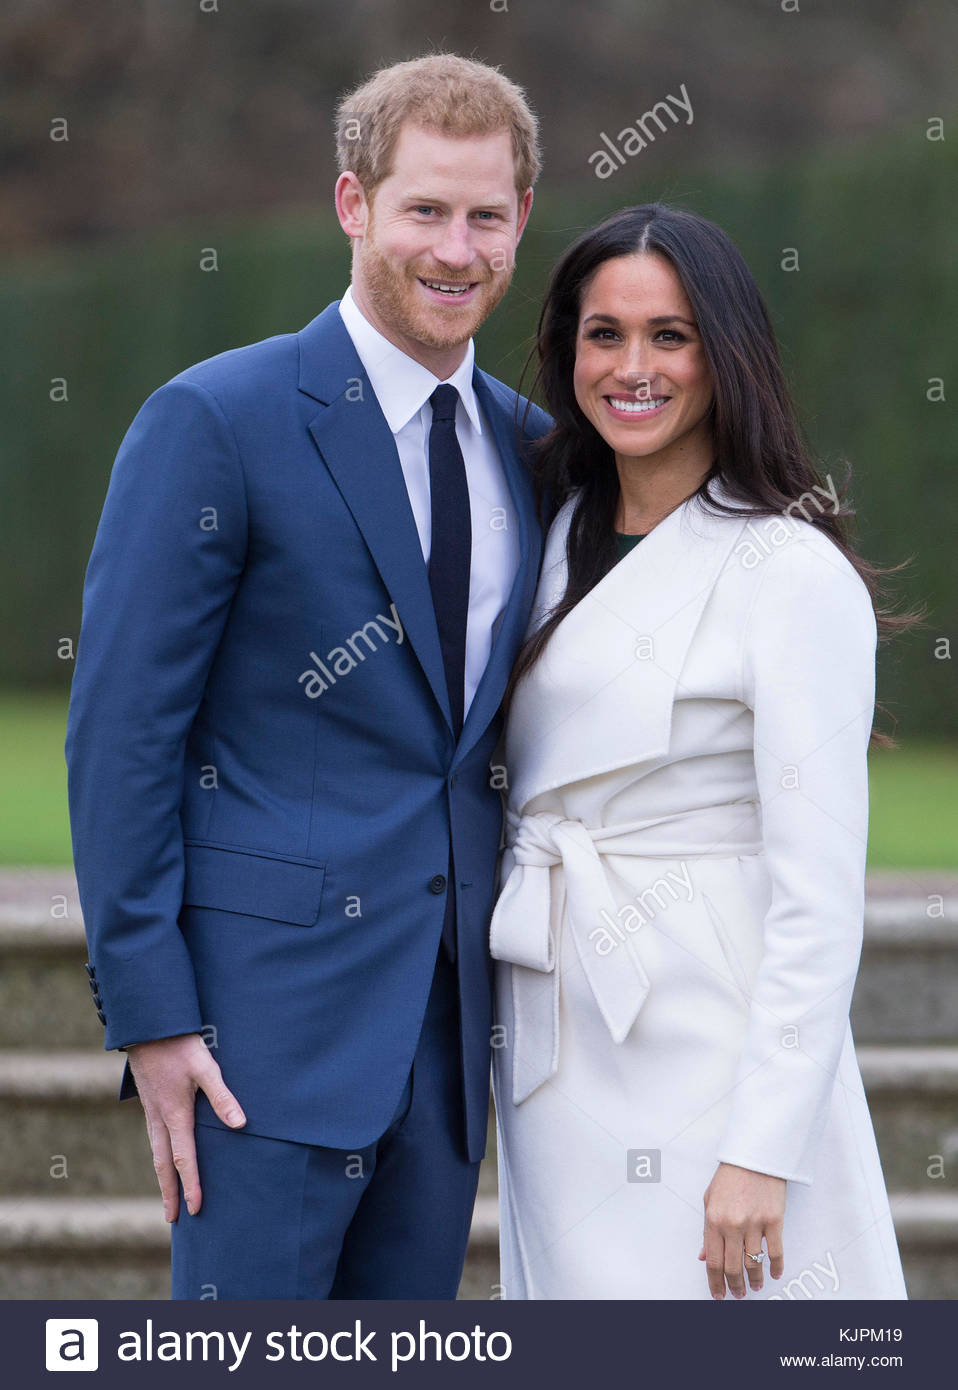 London, UK. 27th Nov, 2017. Prince Harry and Megan Markle announce their engagement at Kensington Palace in London. - Stock Image